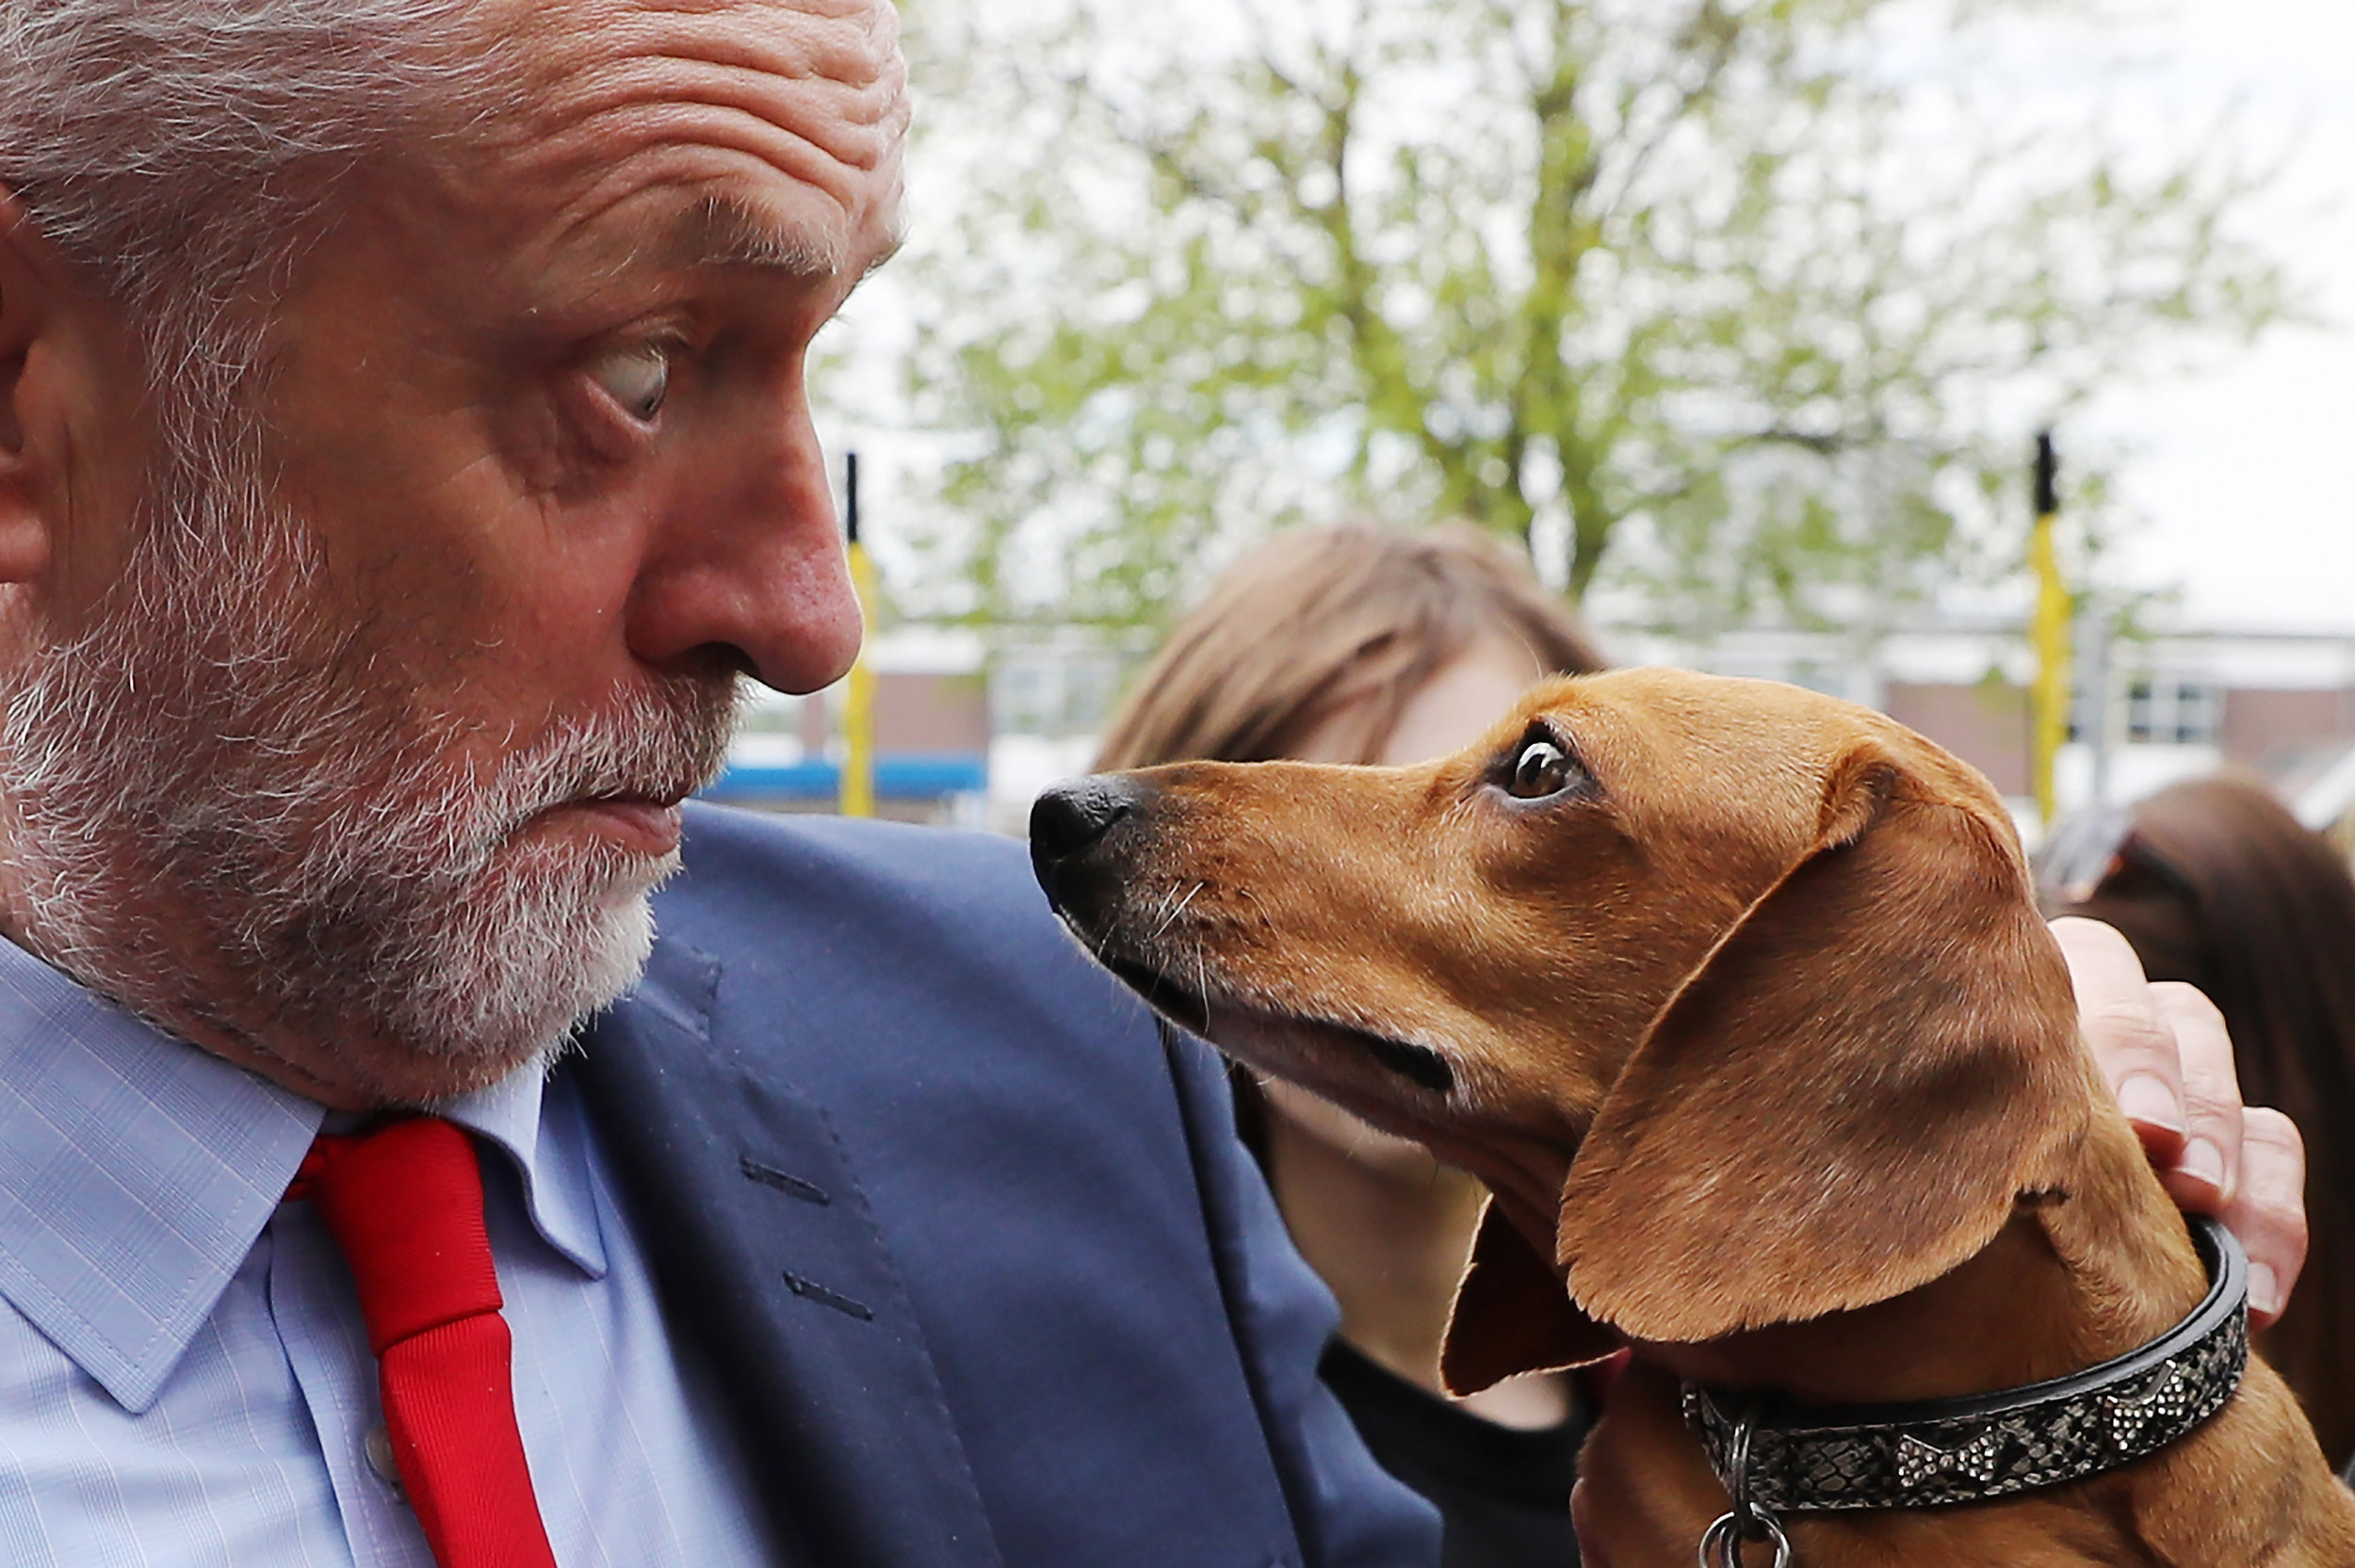 Labour Leader Jeremy Corbyn is startled by Cody the Dachshund during a campaign event outside the James Paget Hospital in Great Yarmouth.Photo by Dan Kitwood  13 May 2017